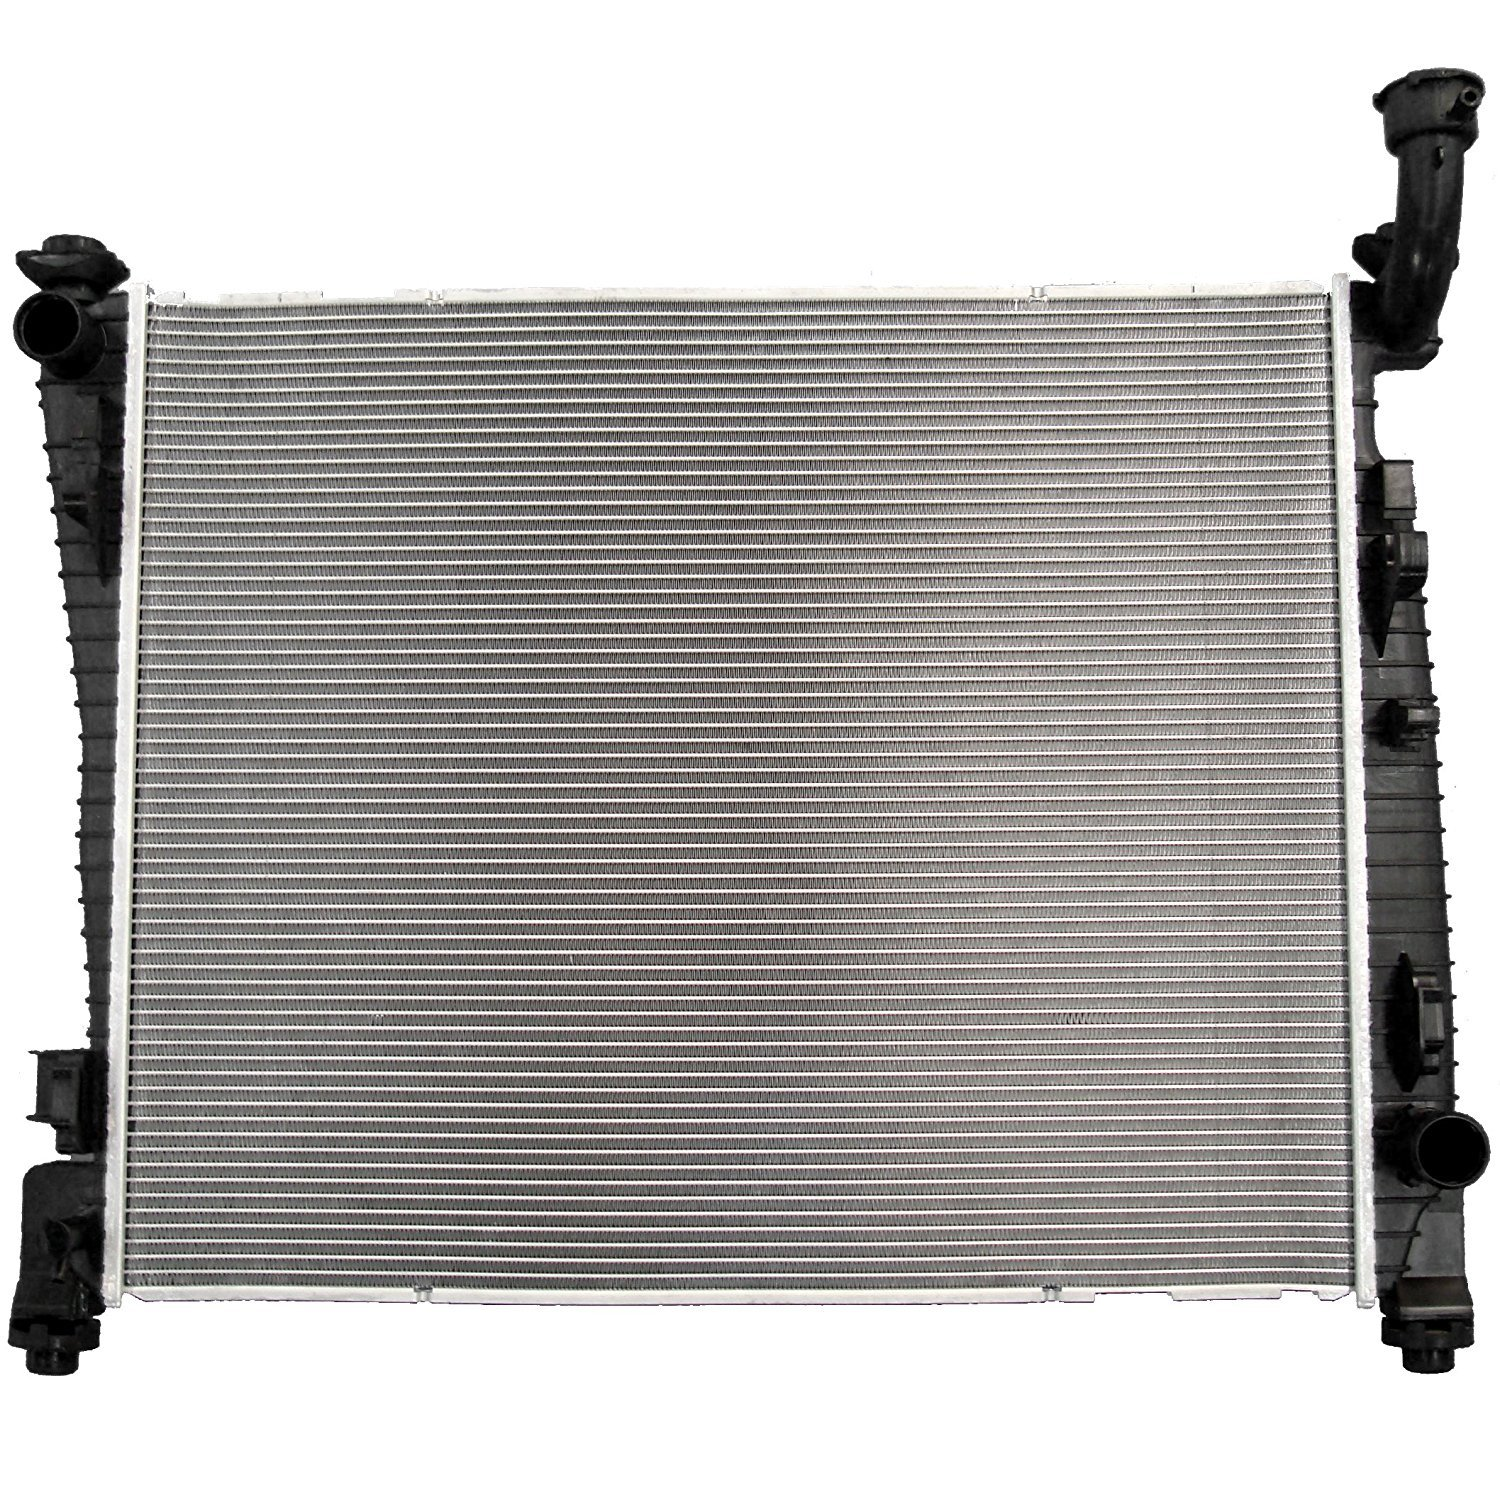 SCITOO Radiator 13200 for Dodge Durango 3.6L 5.7L 2011-2014 by Scitoo